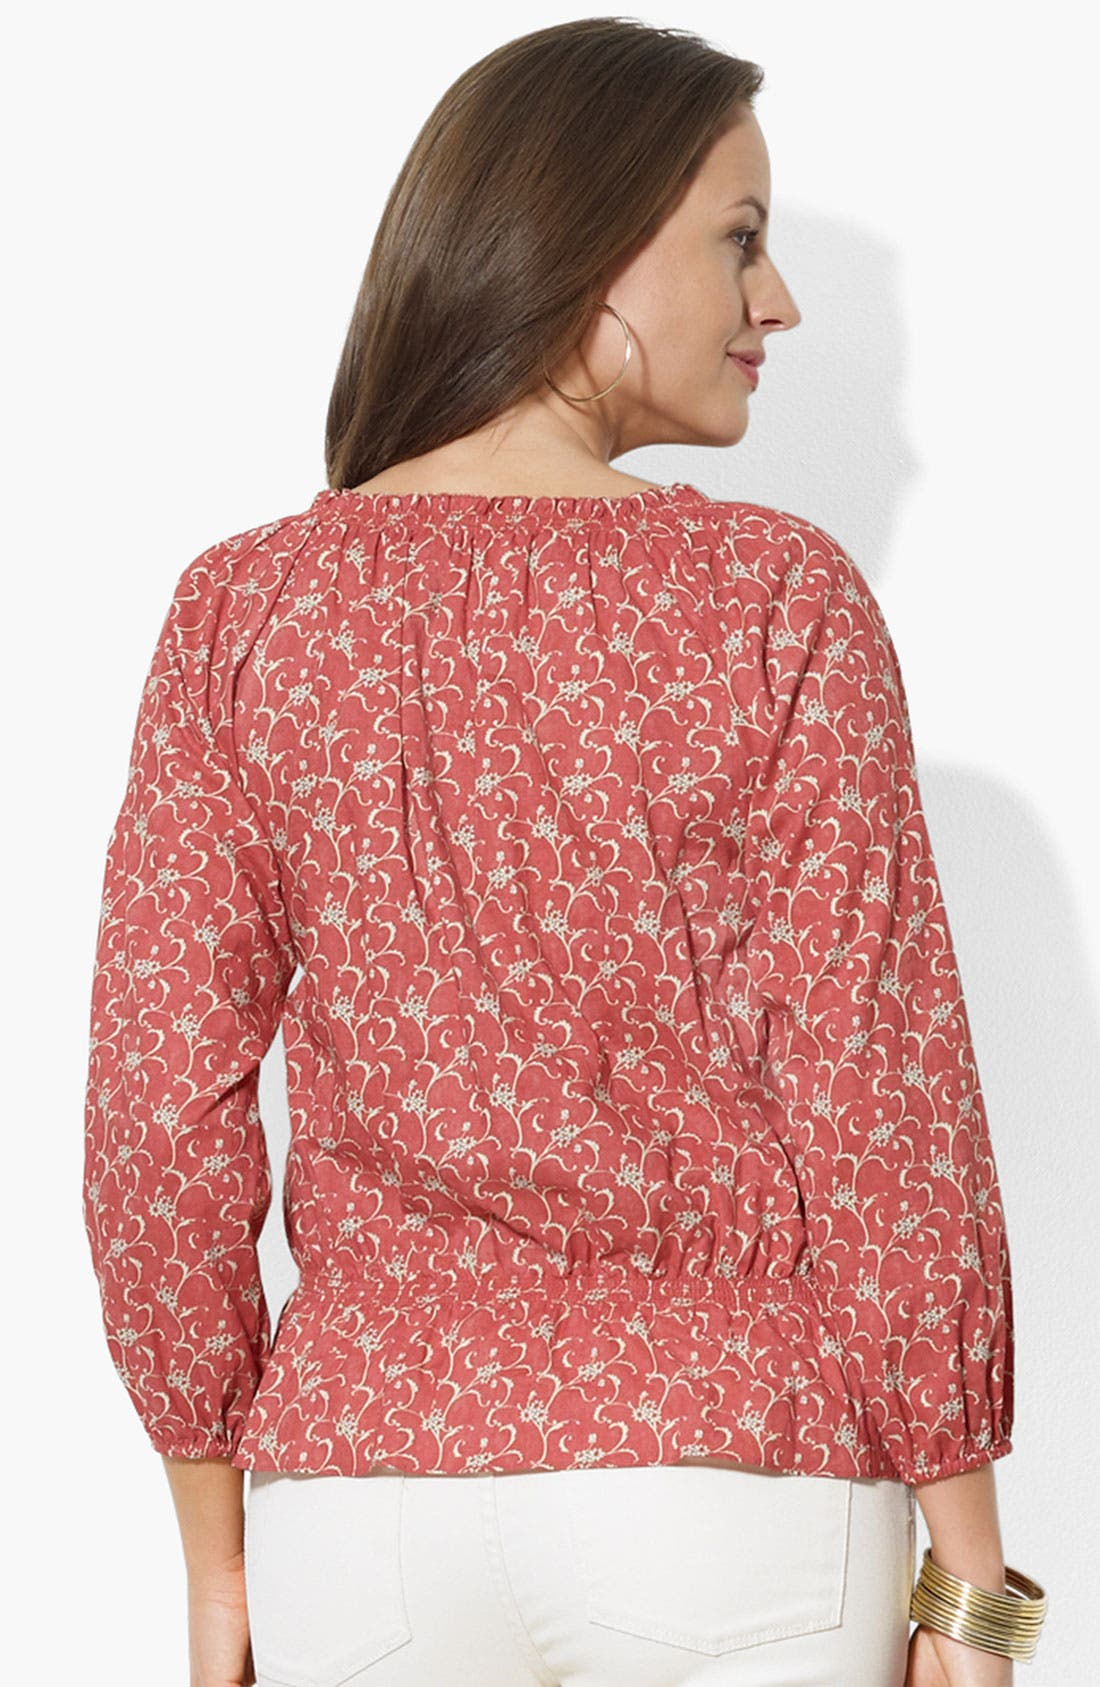 Alternate Image 2  - Lauren Ralph Lauren Print Lace Up Peasant Top (Plus Size)